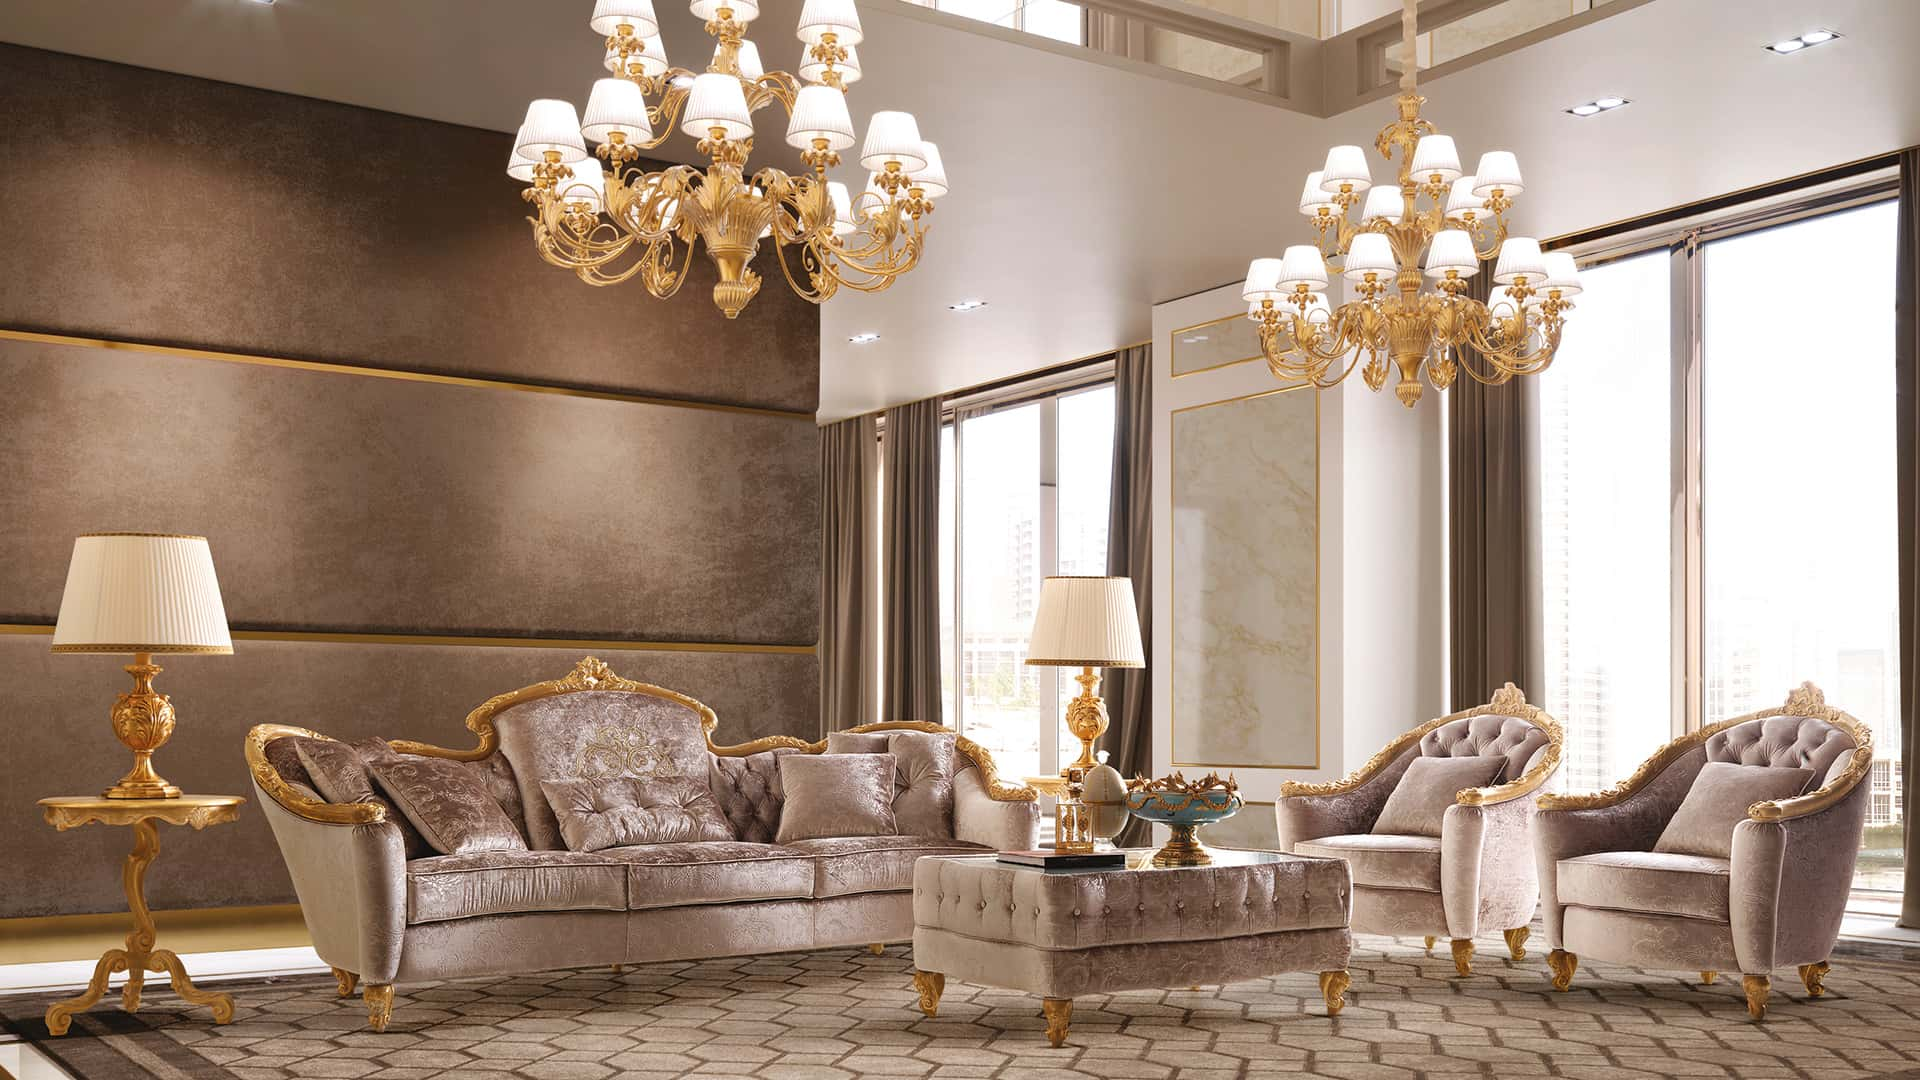 Classic Italian luxury chandeliers for hall, kitchen, living